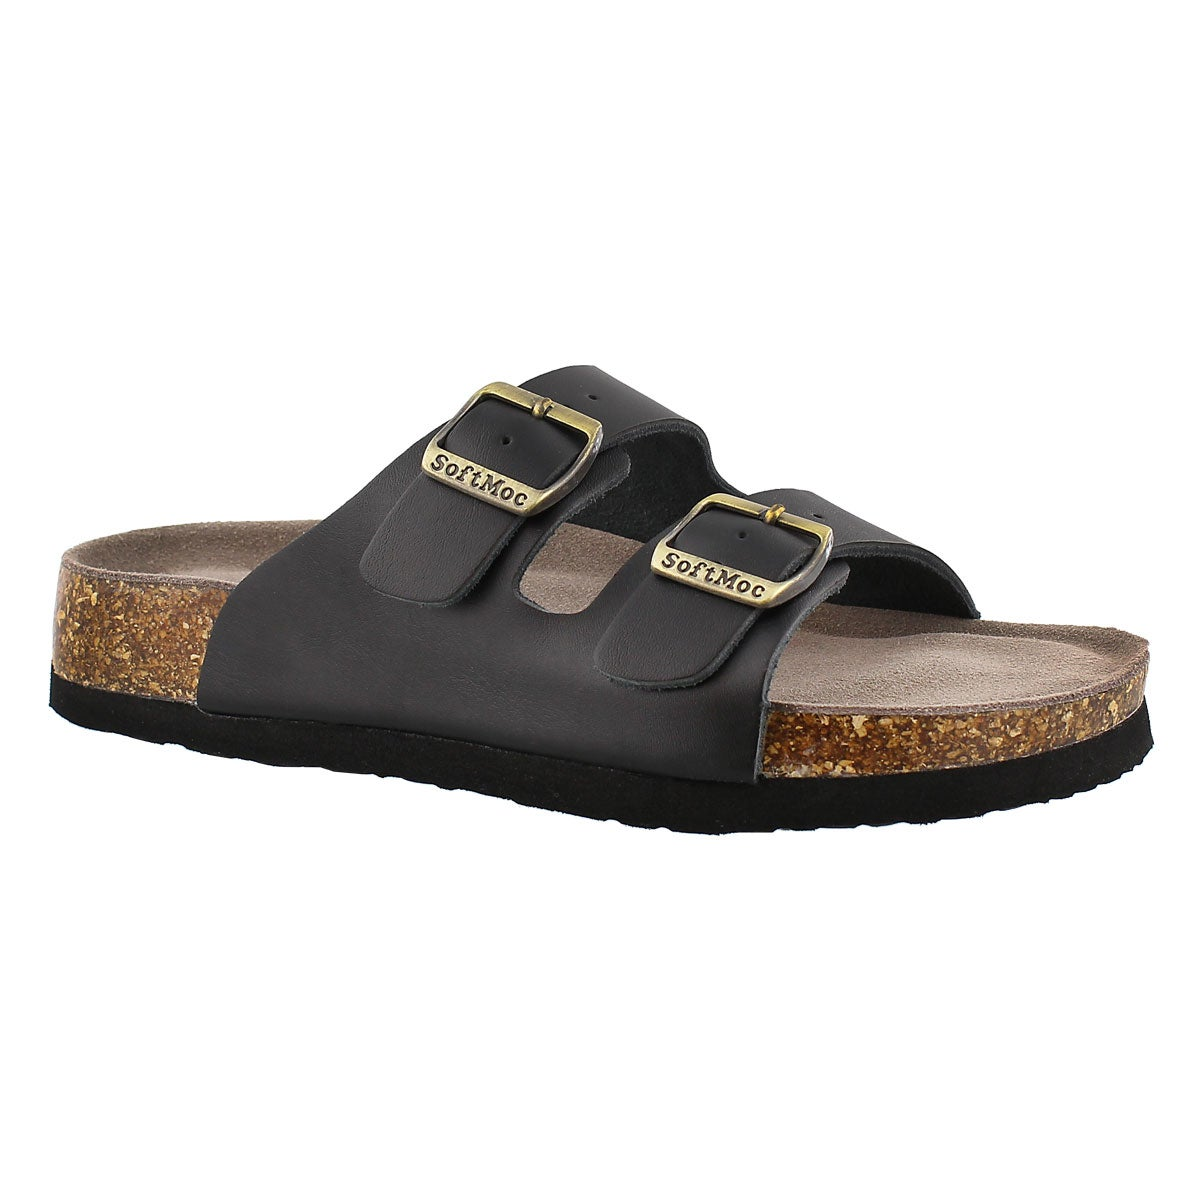 Women's ANNA 3 black memory foam footbed sandals